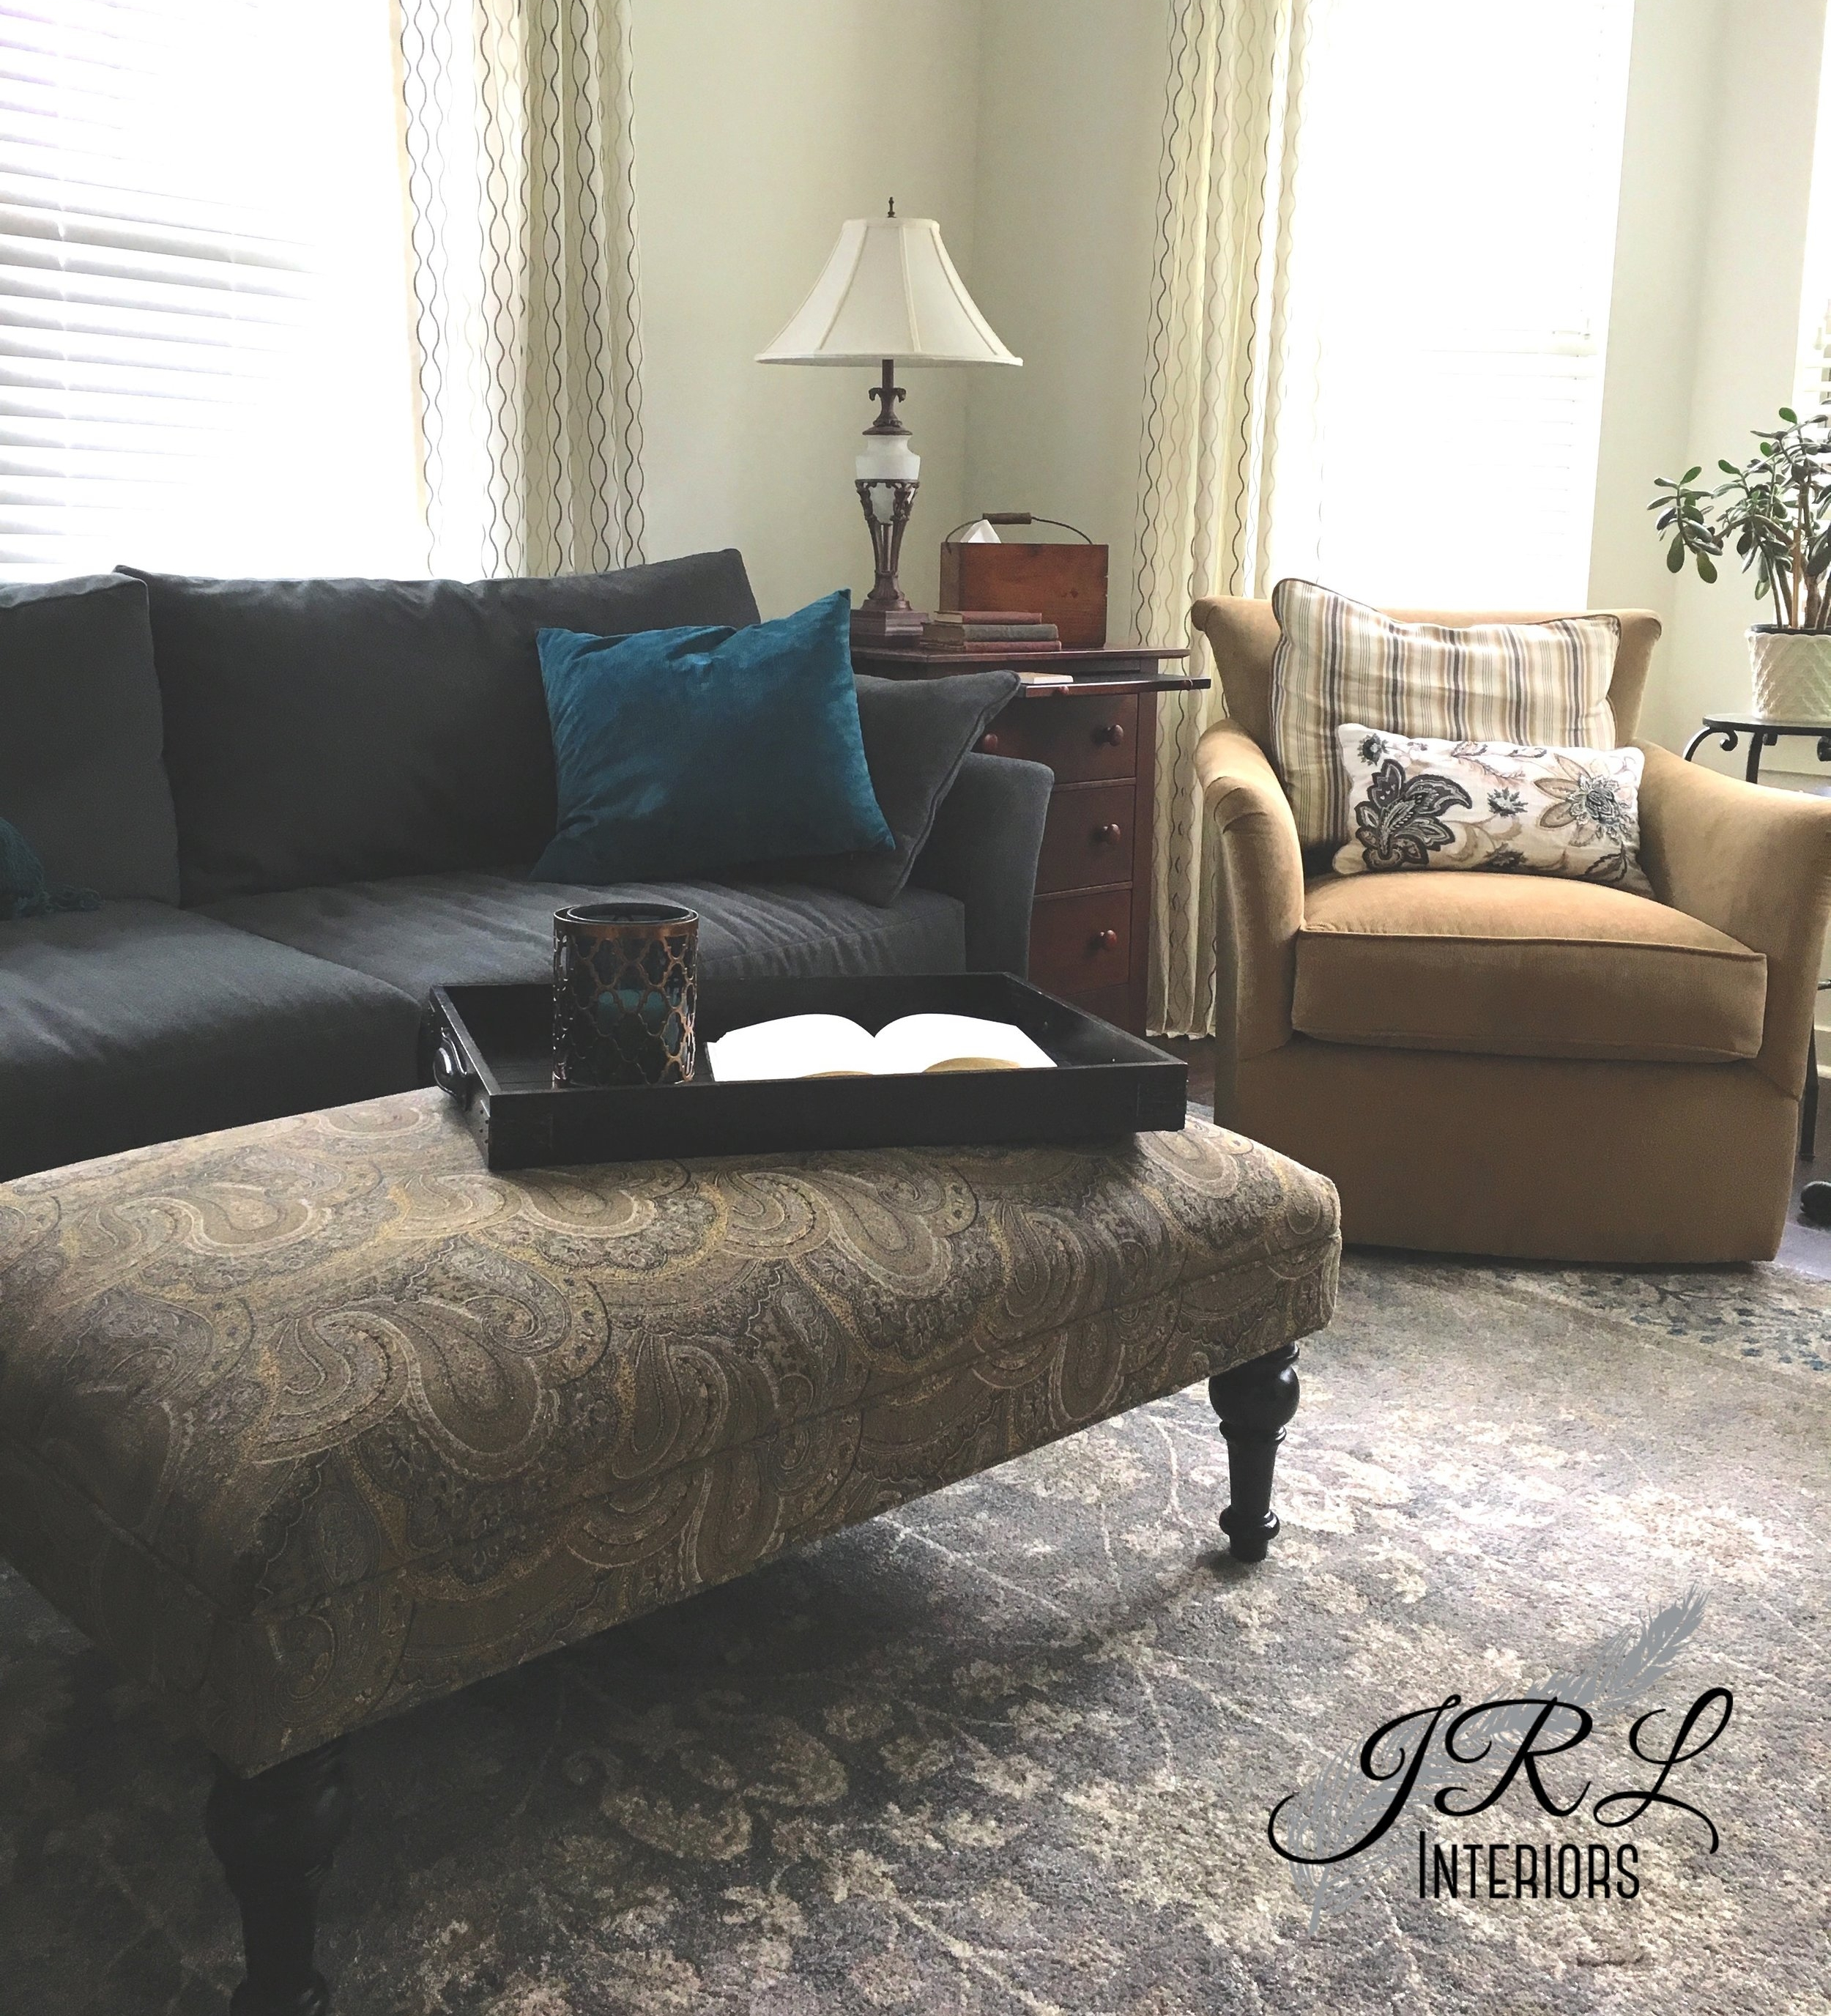 ReNesting reusing existing furniture in a new home